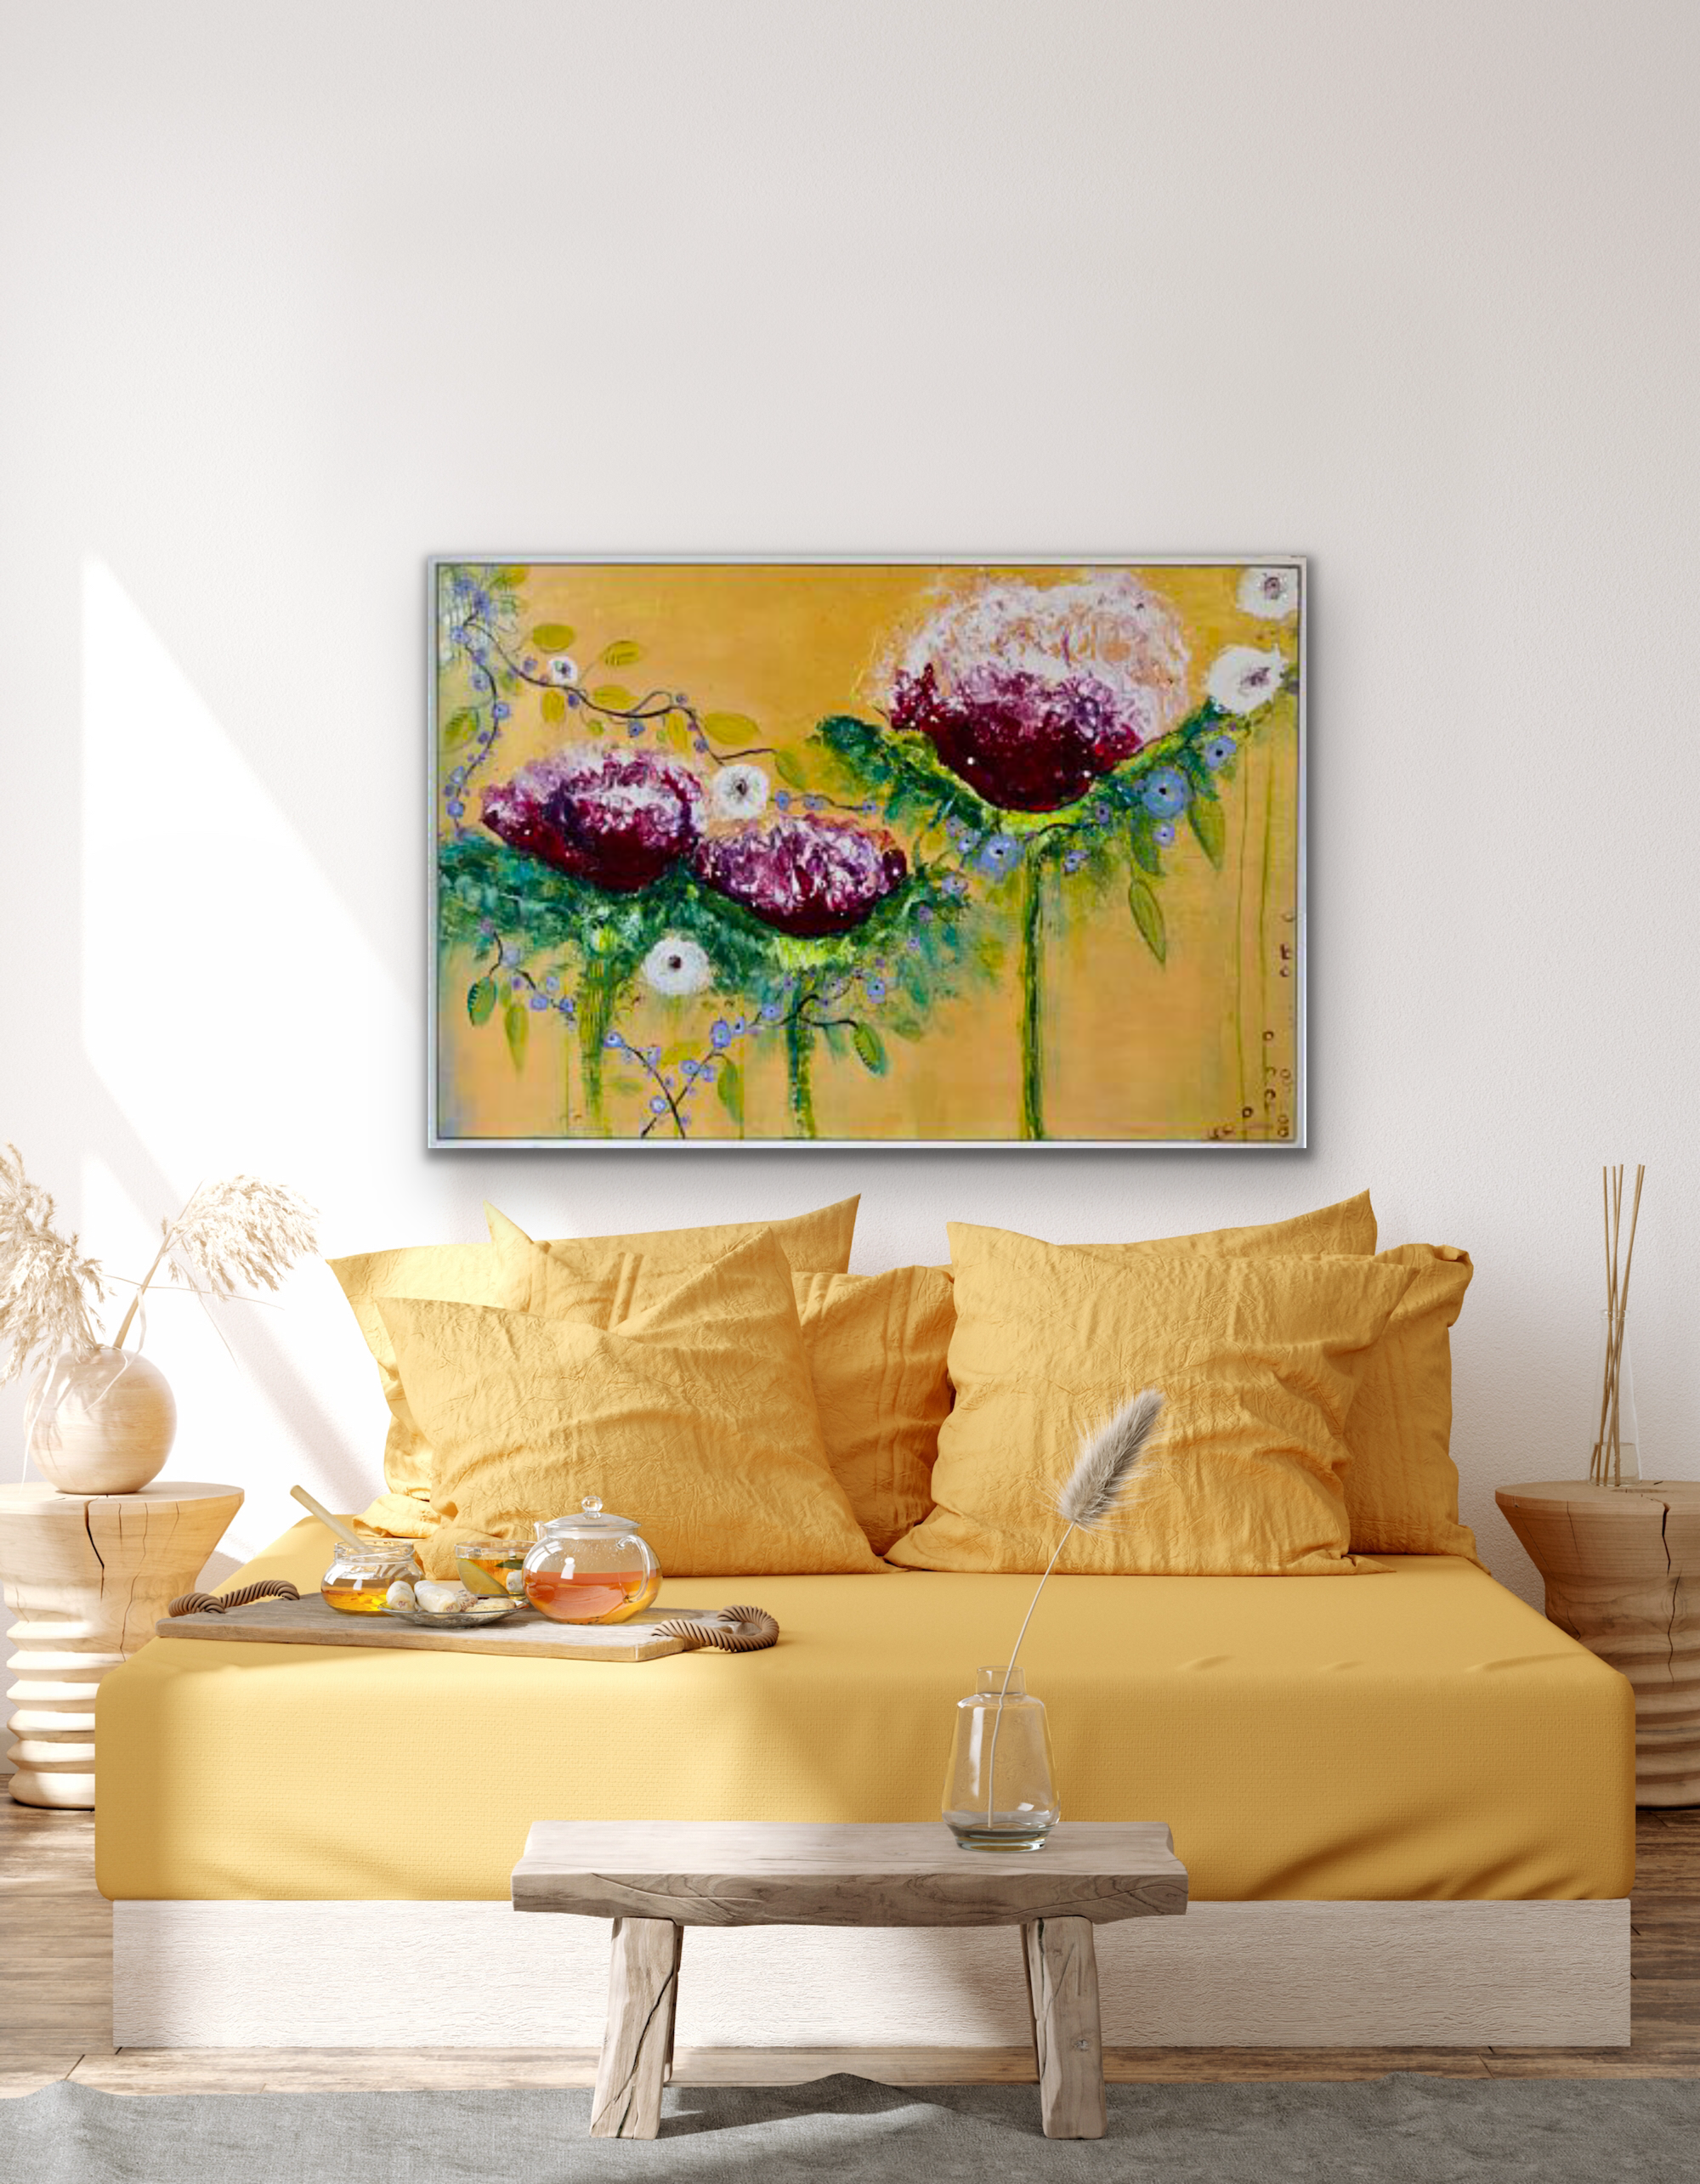 A strong abstract flower original painting for over a sofa or on its own in a dining room or hallway. Large  playful cerise flowers are intertwined with small lavender flowers against a  gold metallic background displayed in a bedroom setting.